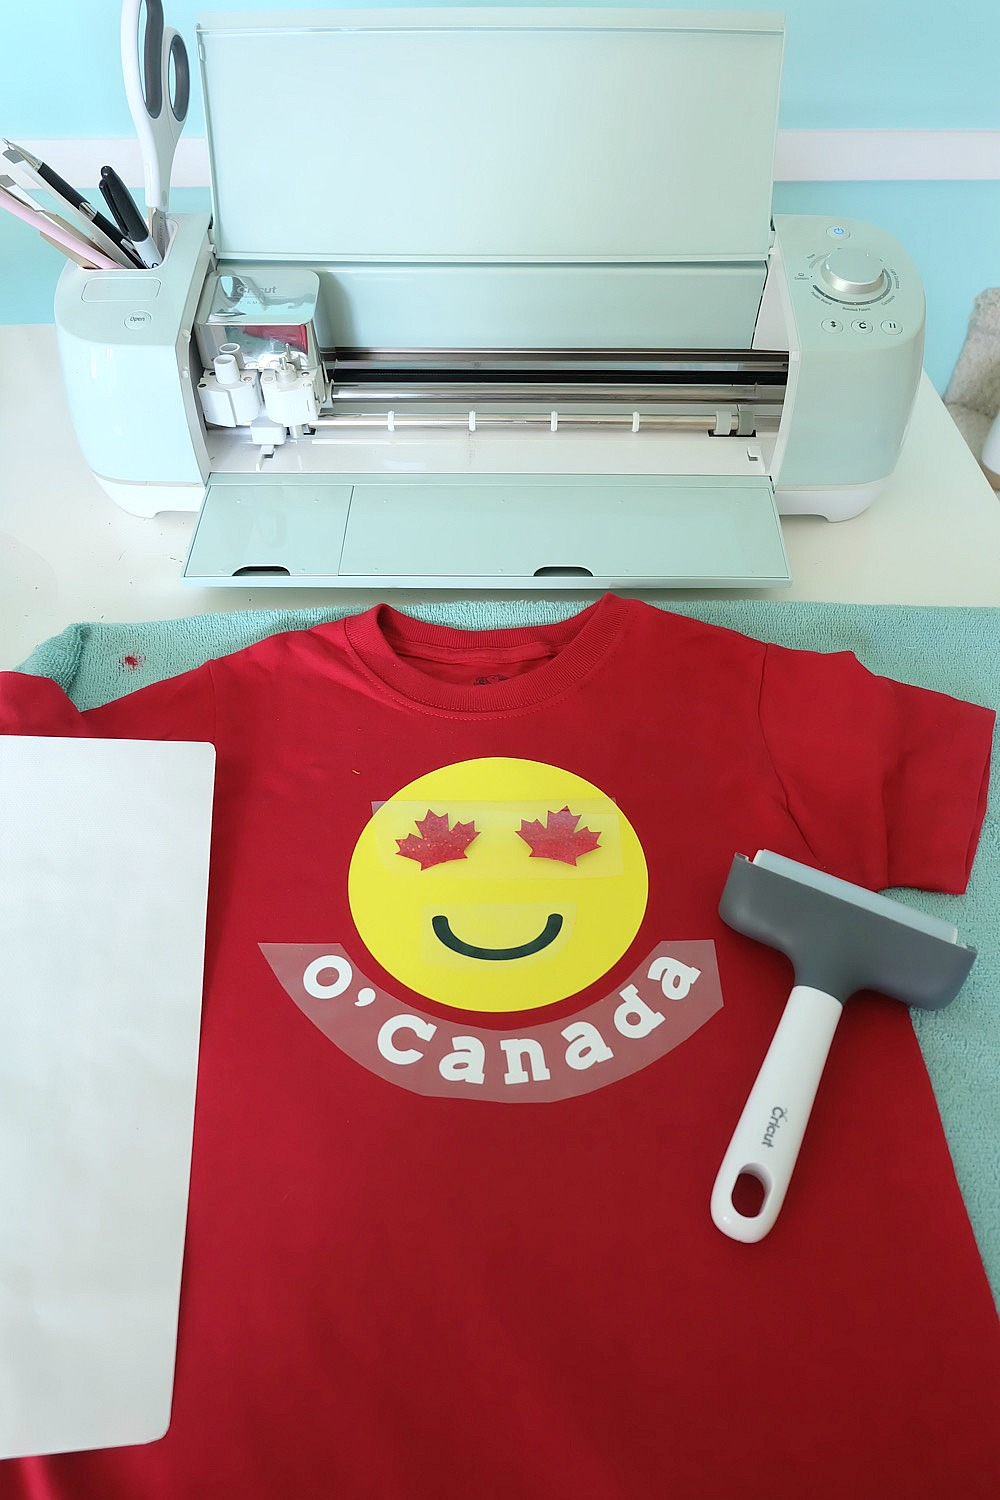 Celebrate your Canadian Patriotism and your love for emojis with one super cute shirt! This DIY Canada Emoji Shirt has maple leafs for the eyes and is perfect for Canada Day. Includes step by step instructions and photos along with the cut file. Perfect for making with your Cricut Explore Air or your Cricut Maker. Get crafting! #CricutMade #emojis #Cricut #CanadaDay #DIY